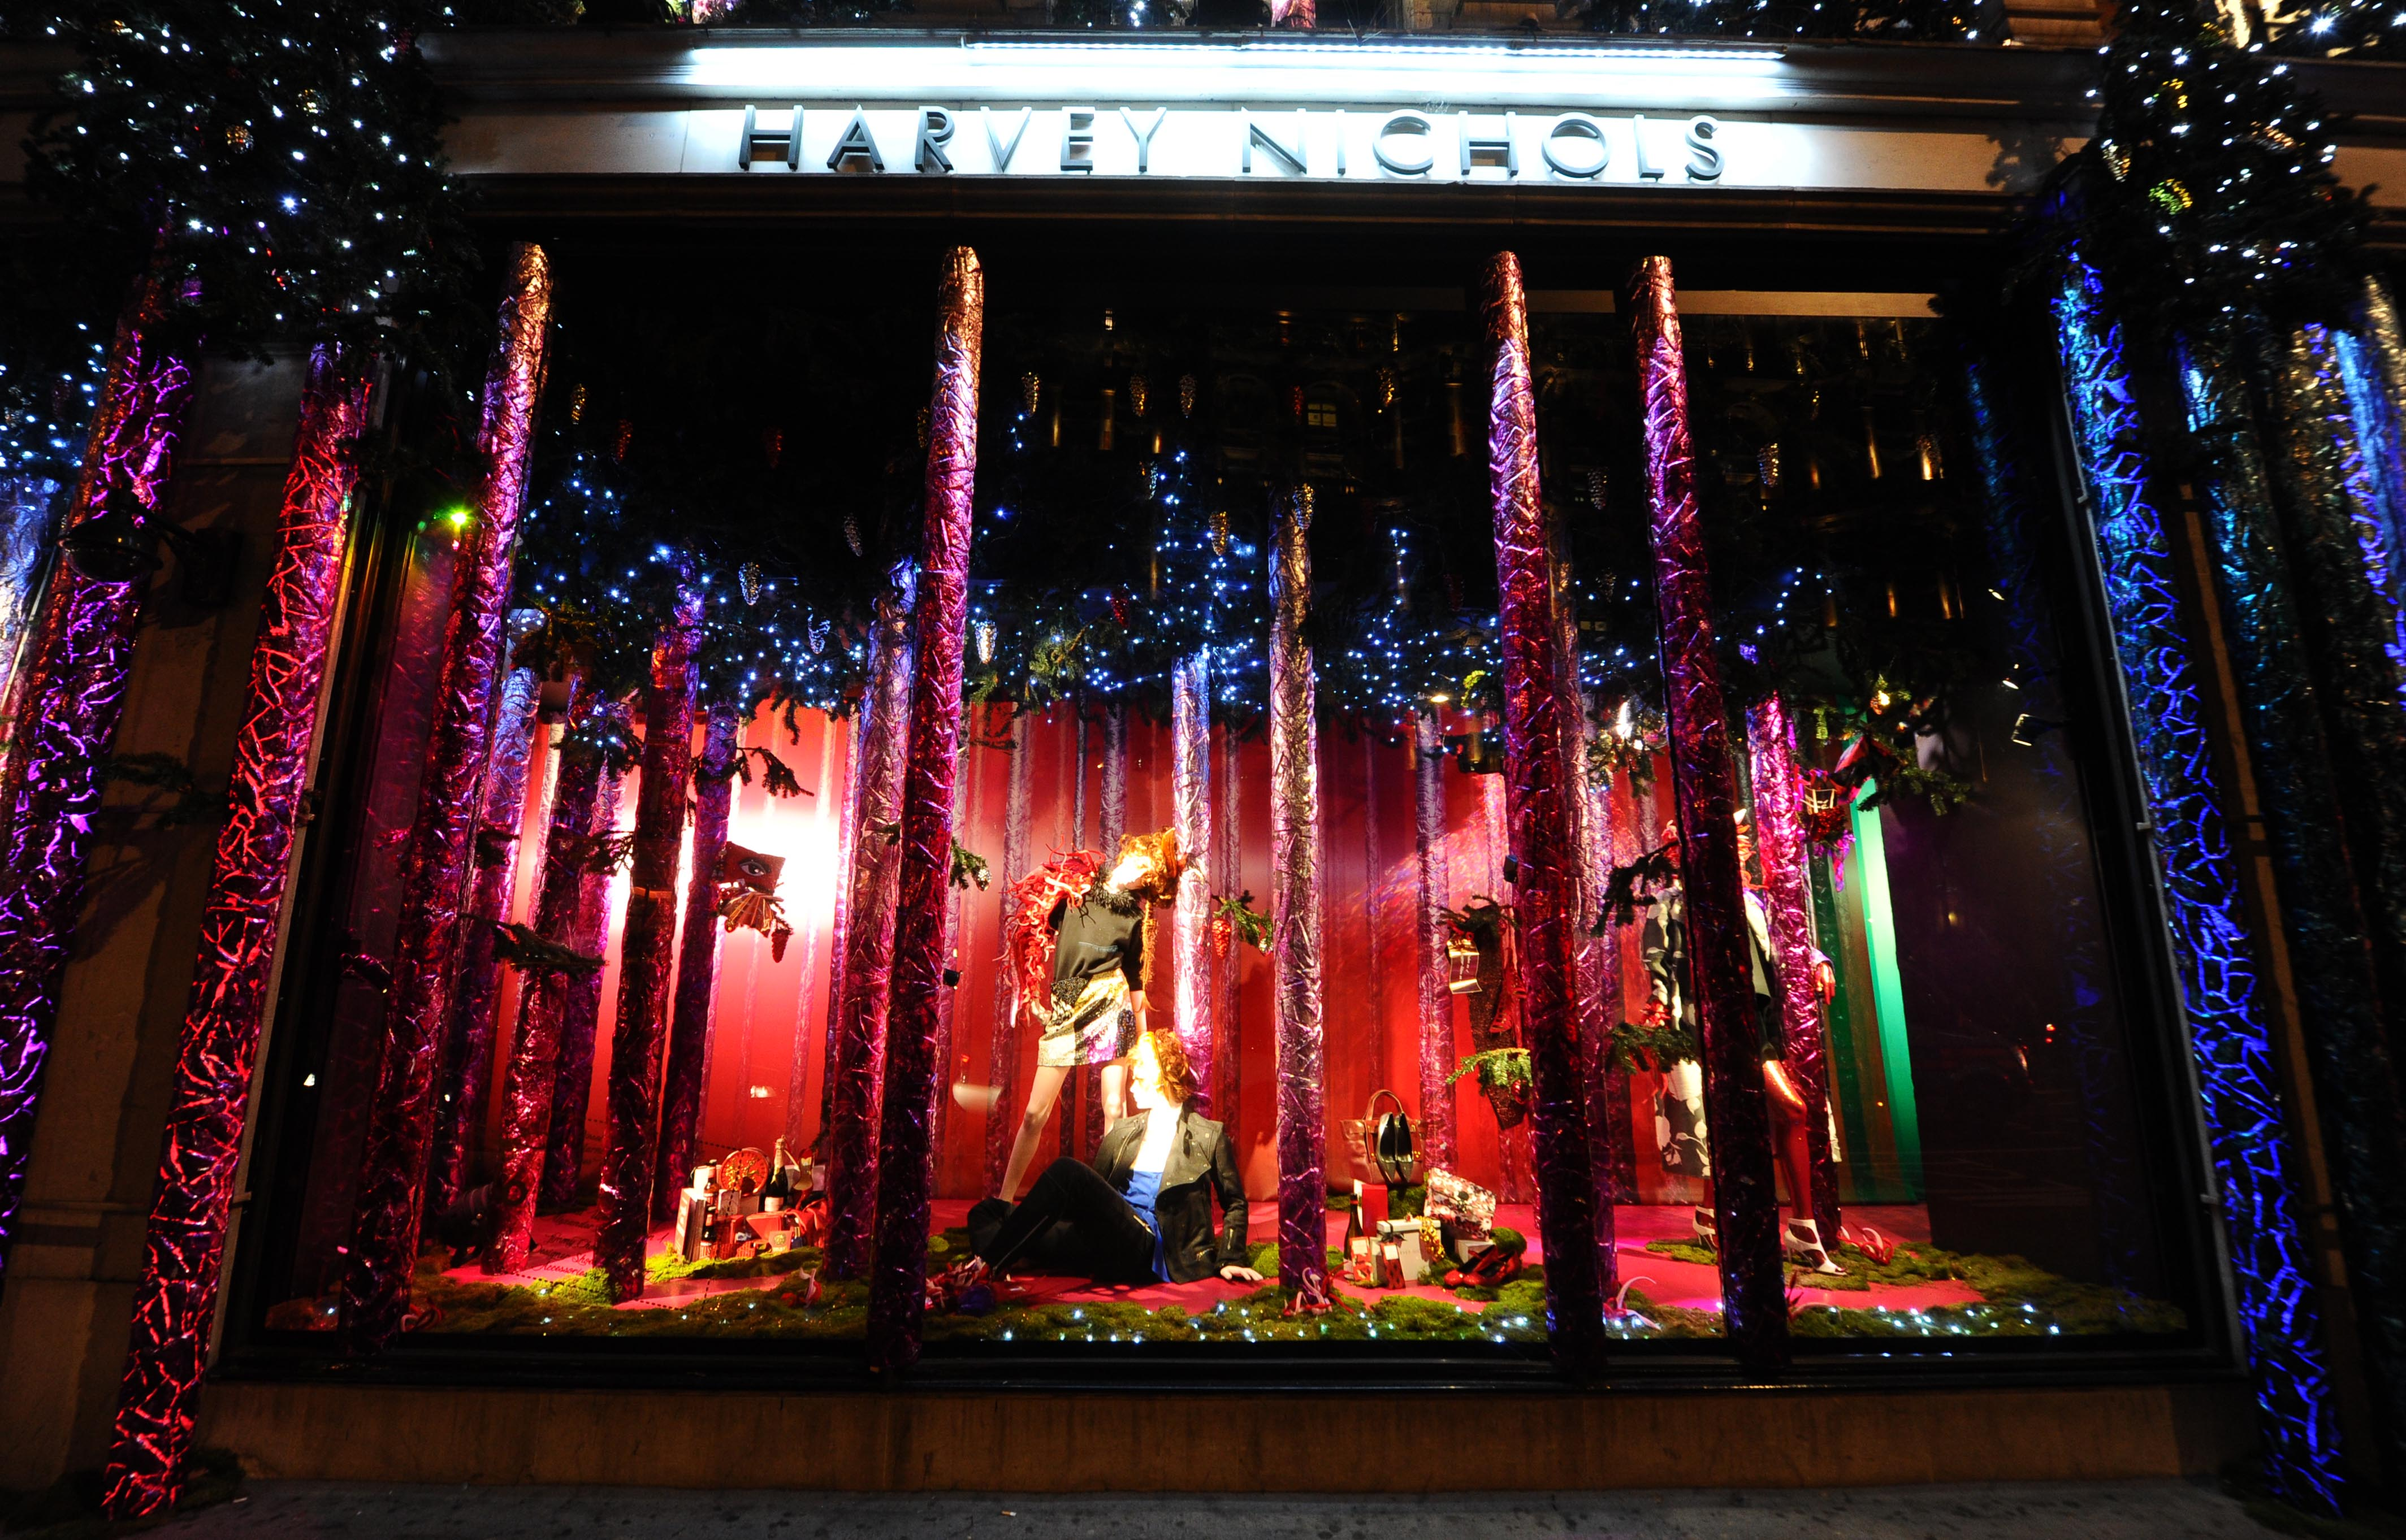 Harvey Nichols Chooses Flexistems From Hewitt Amp Booth For